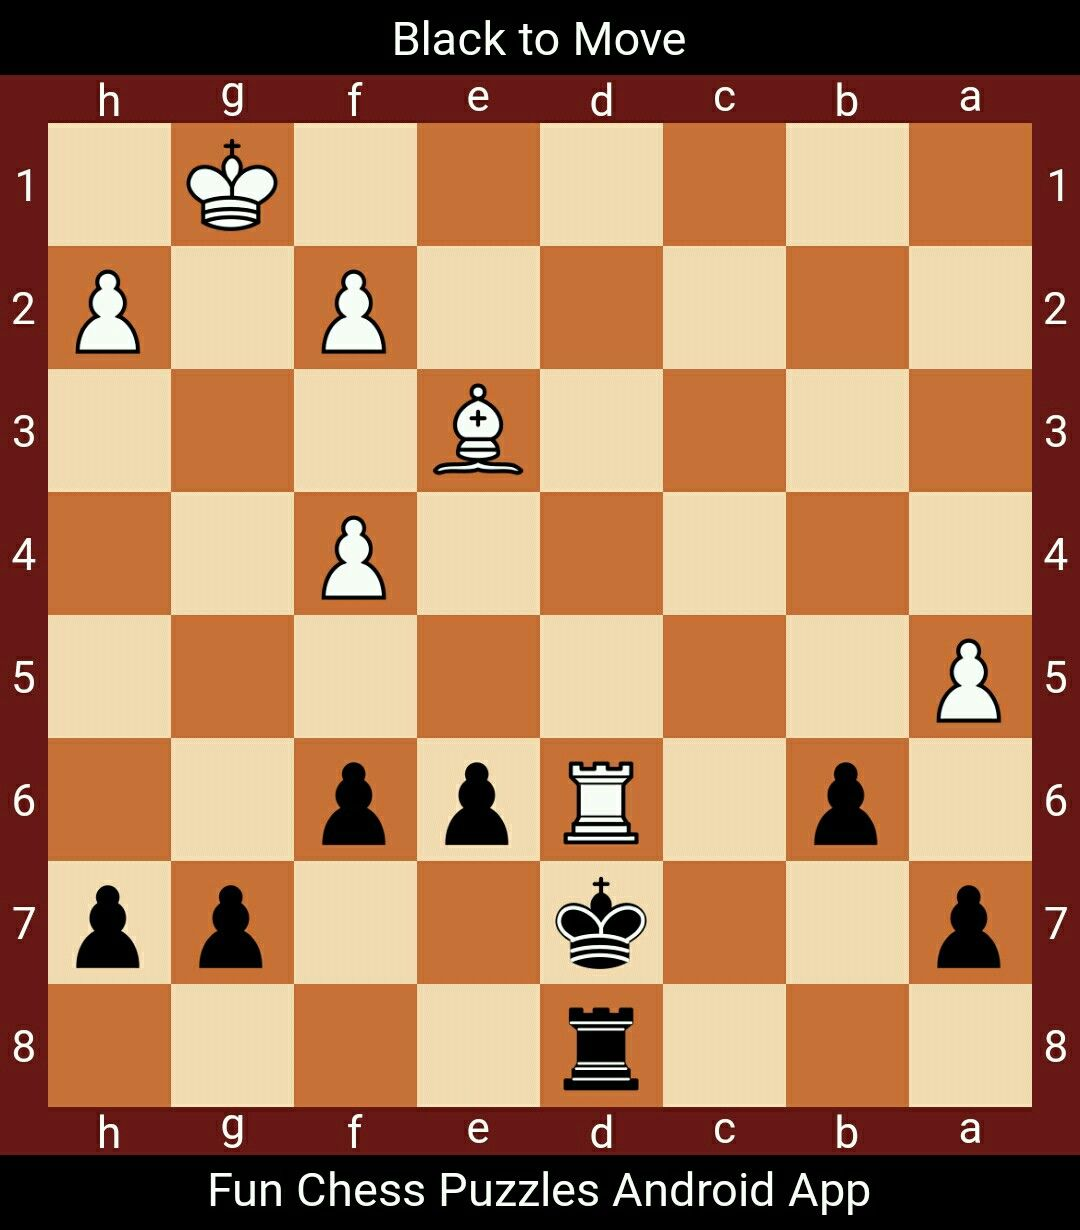 Best chess puzzles on Android | Mobile apps: Android and IOS